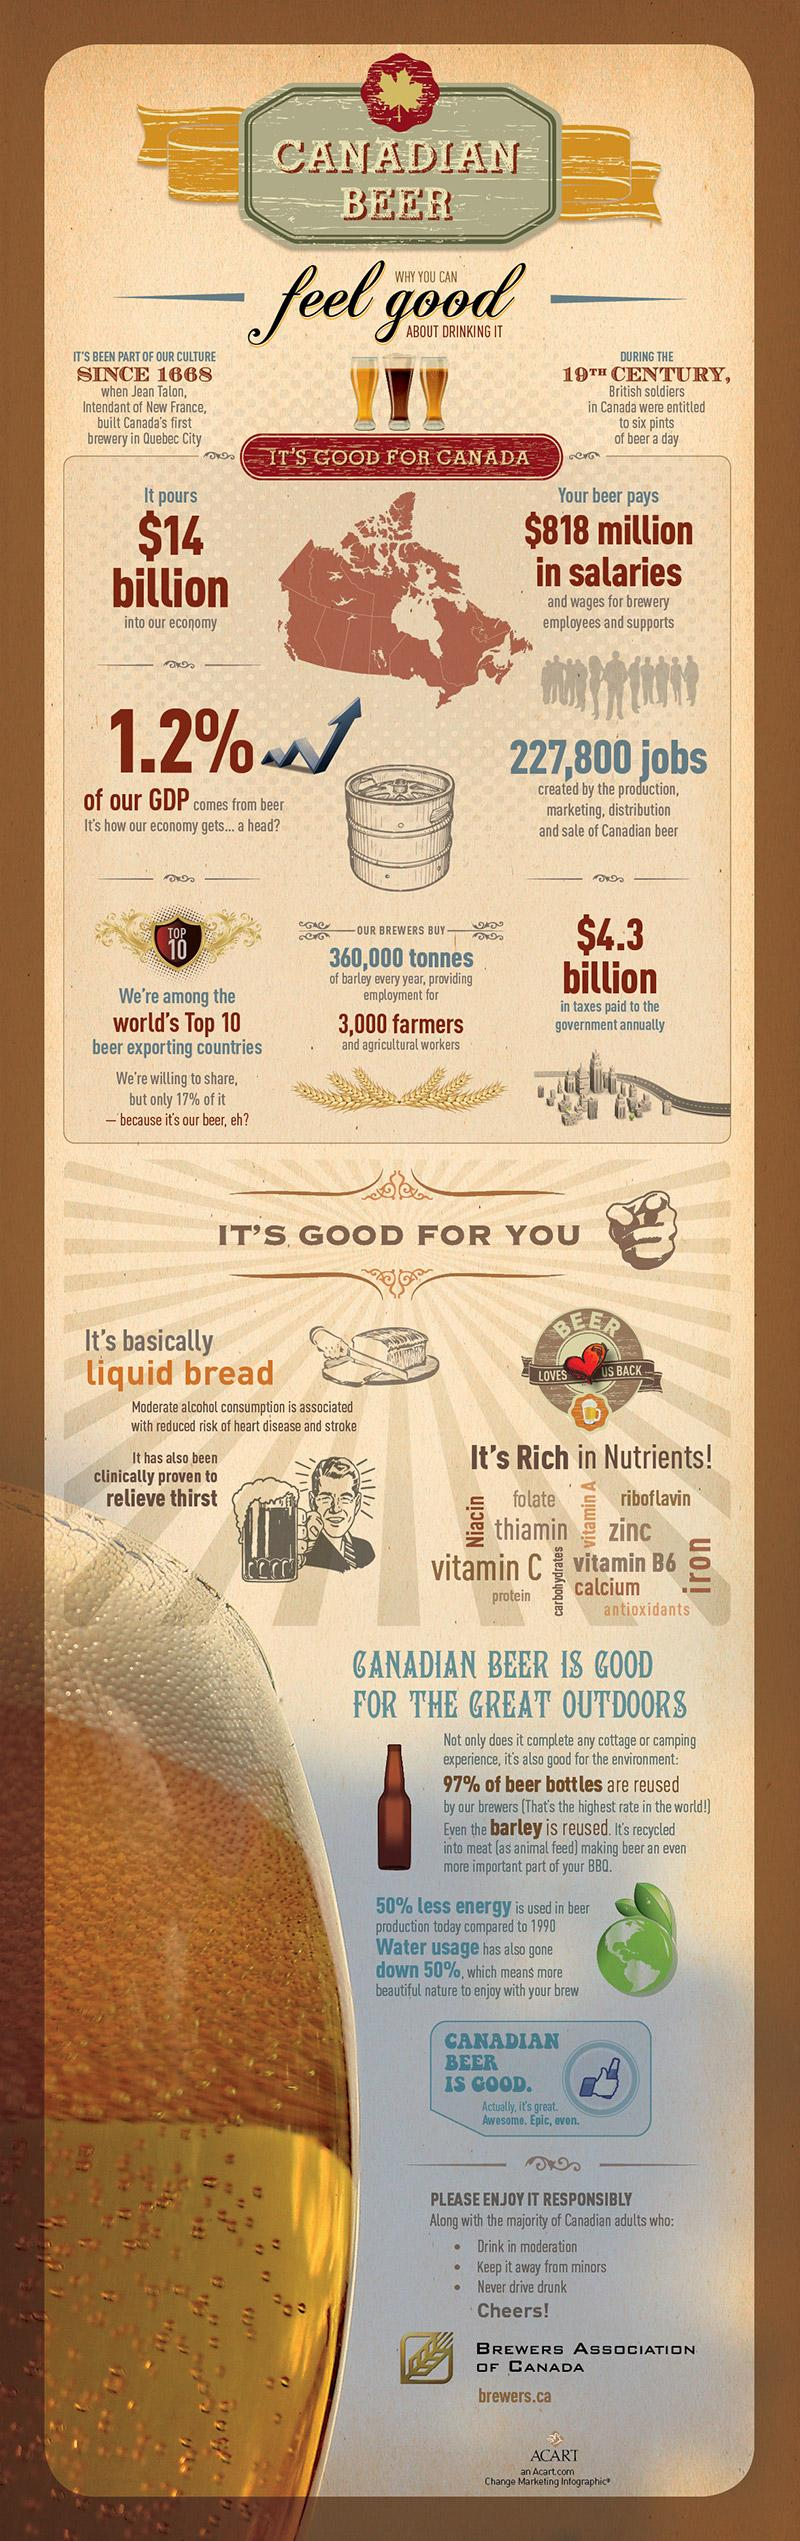 Brewers Association of Canada Digital Ad -  Feel good about drinking it